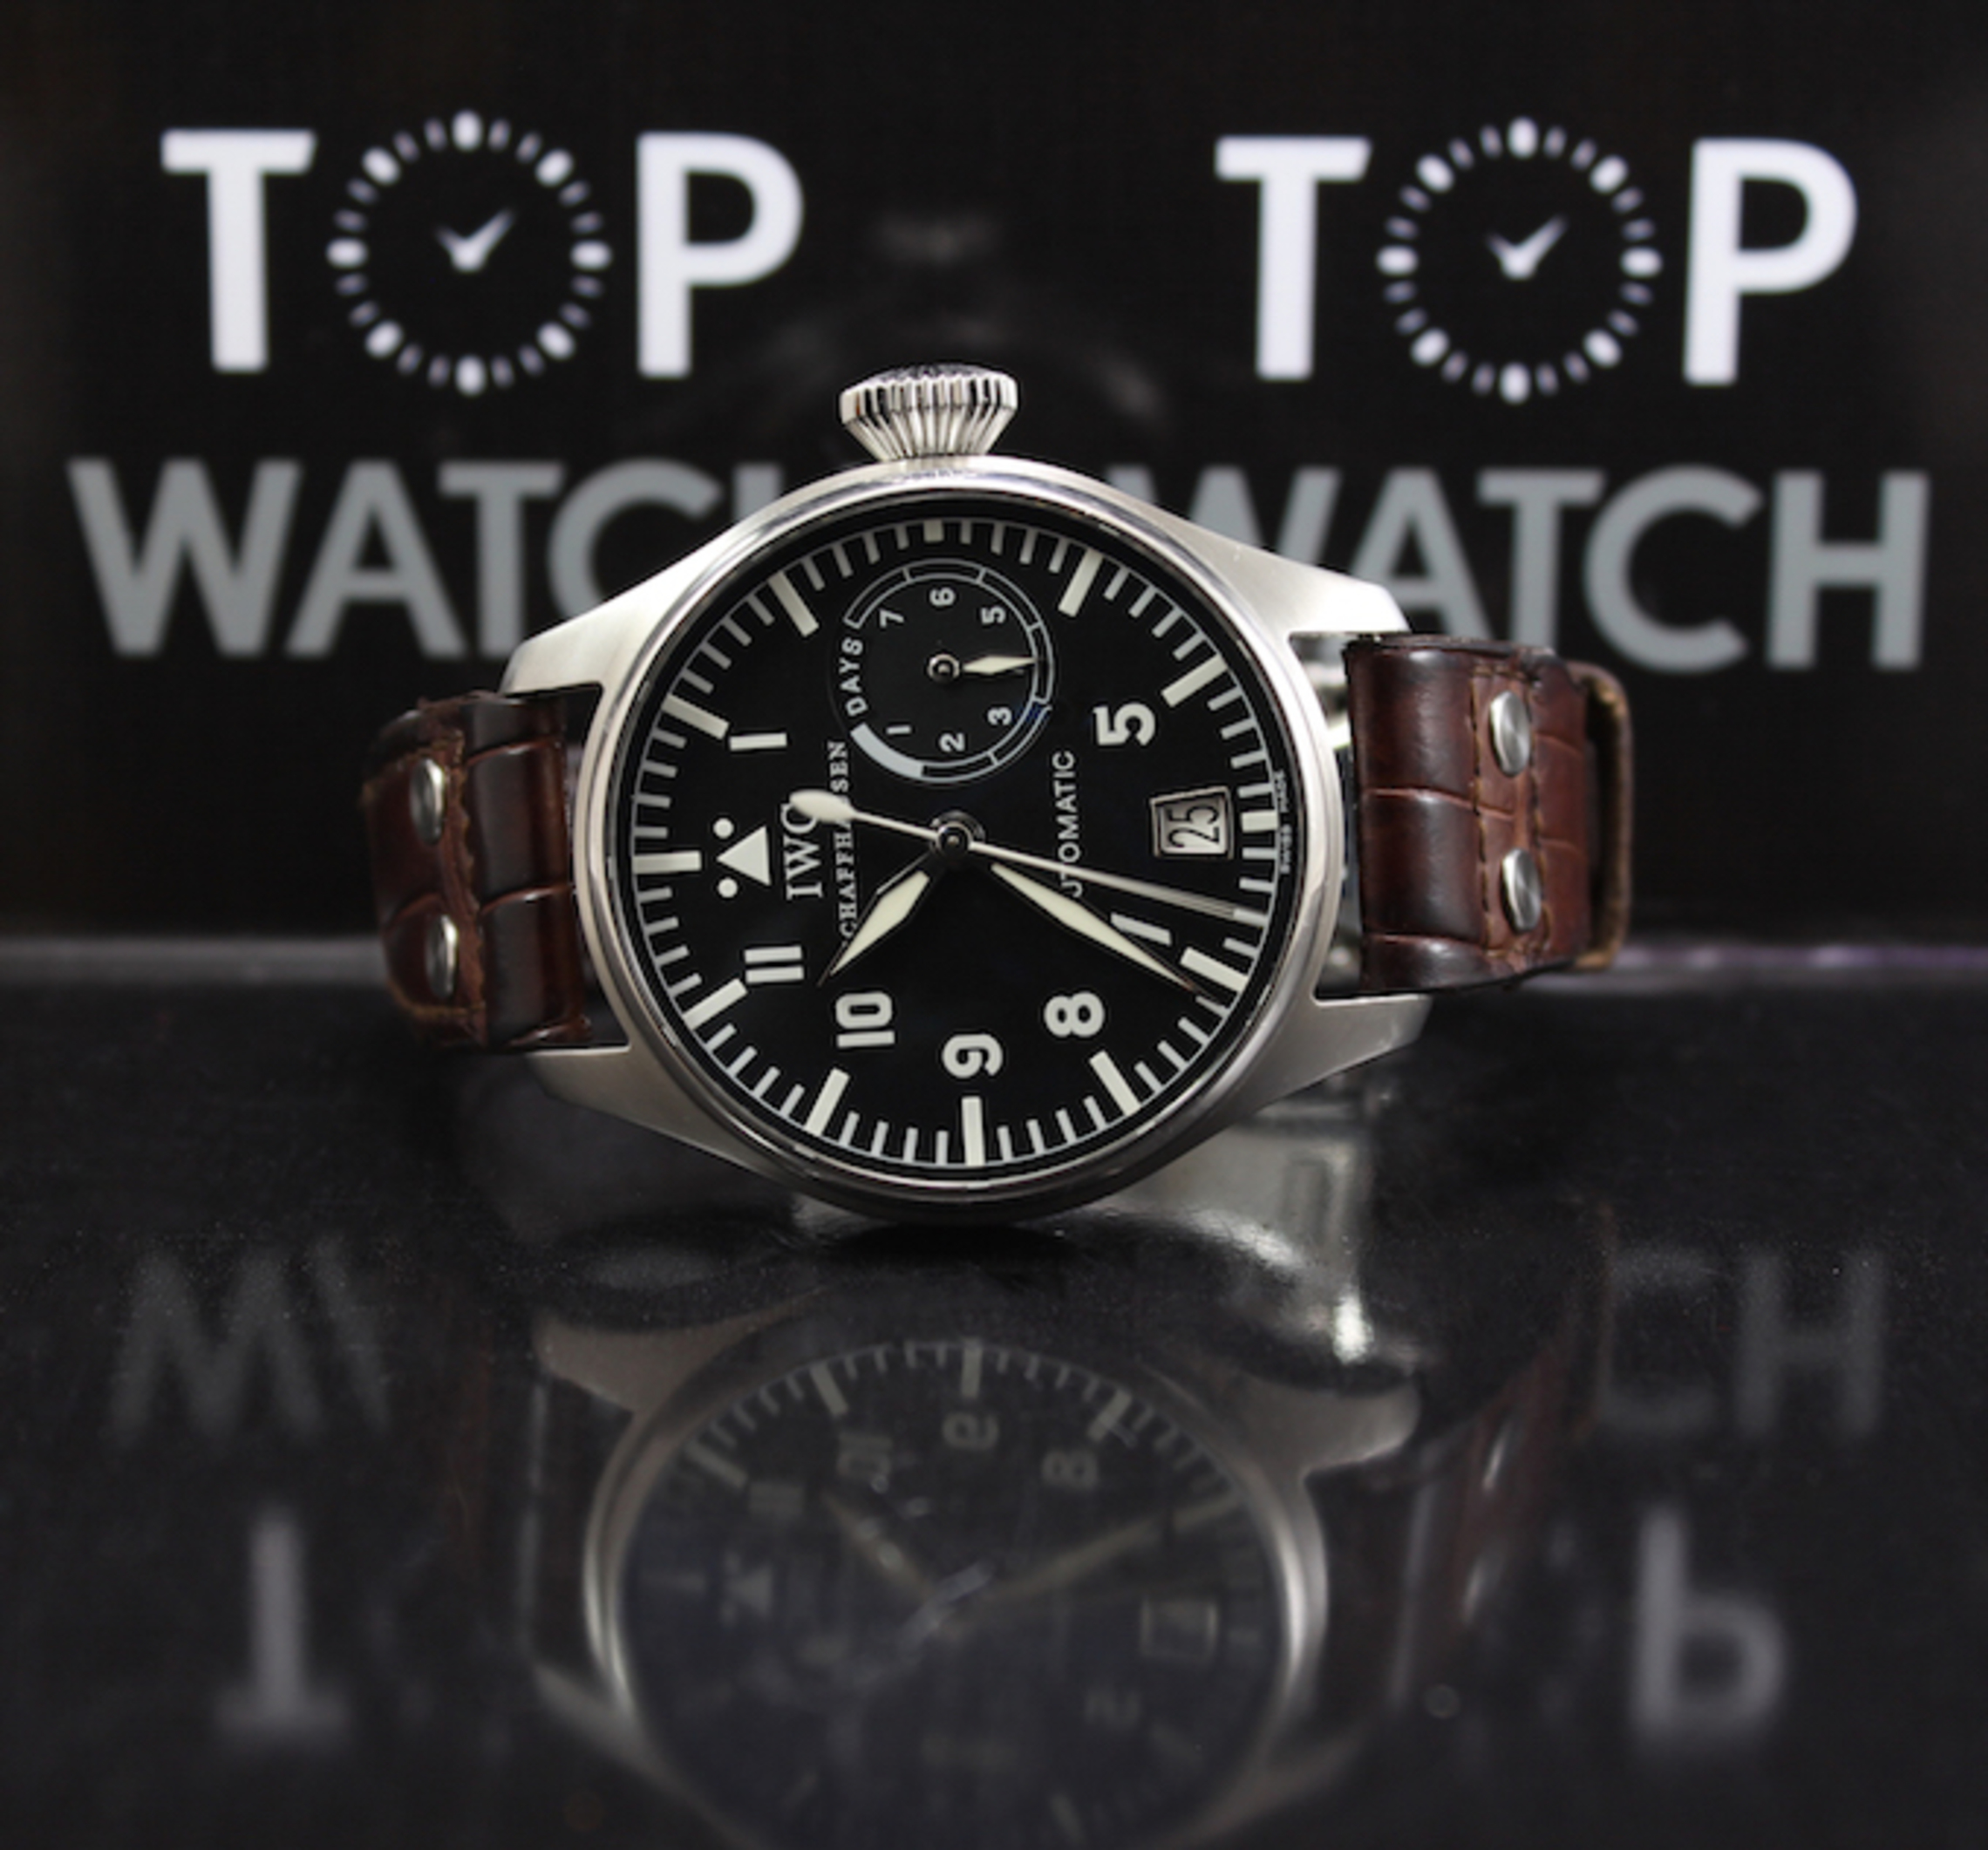 TOPWATCH - IWC Big Pilot (2005) Transition Model - MINT CONDITION